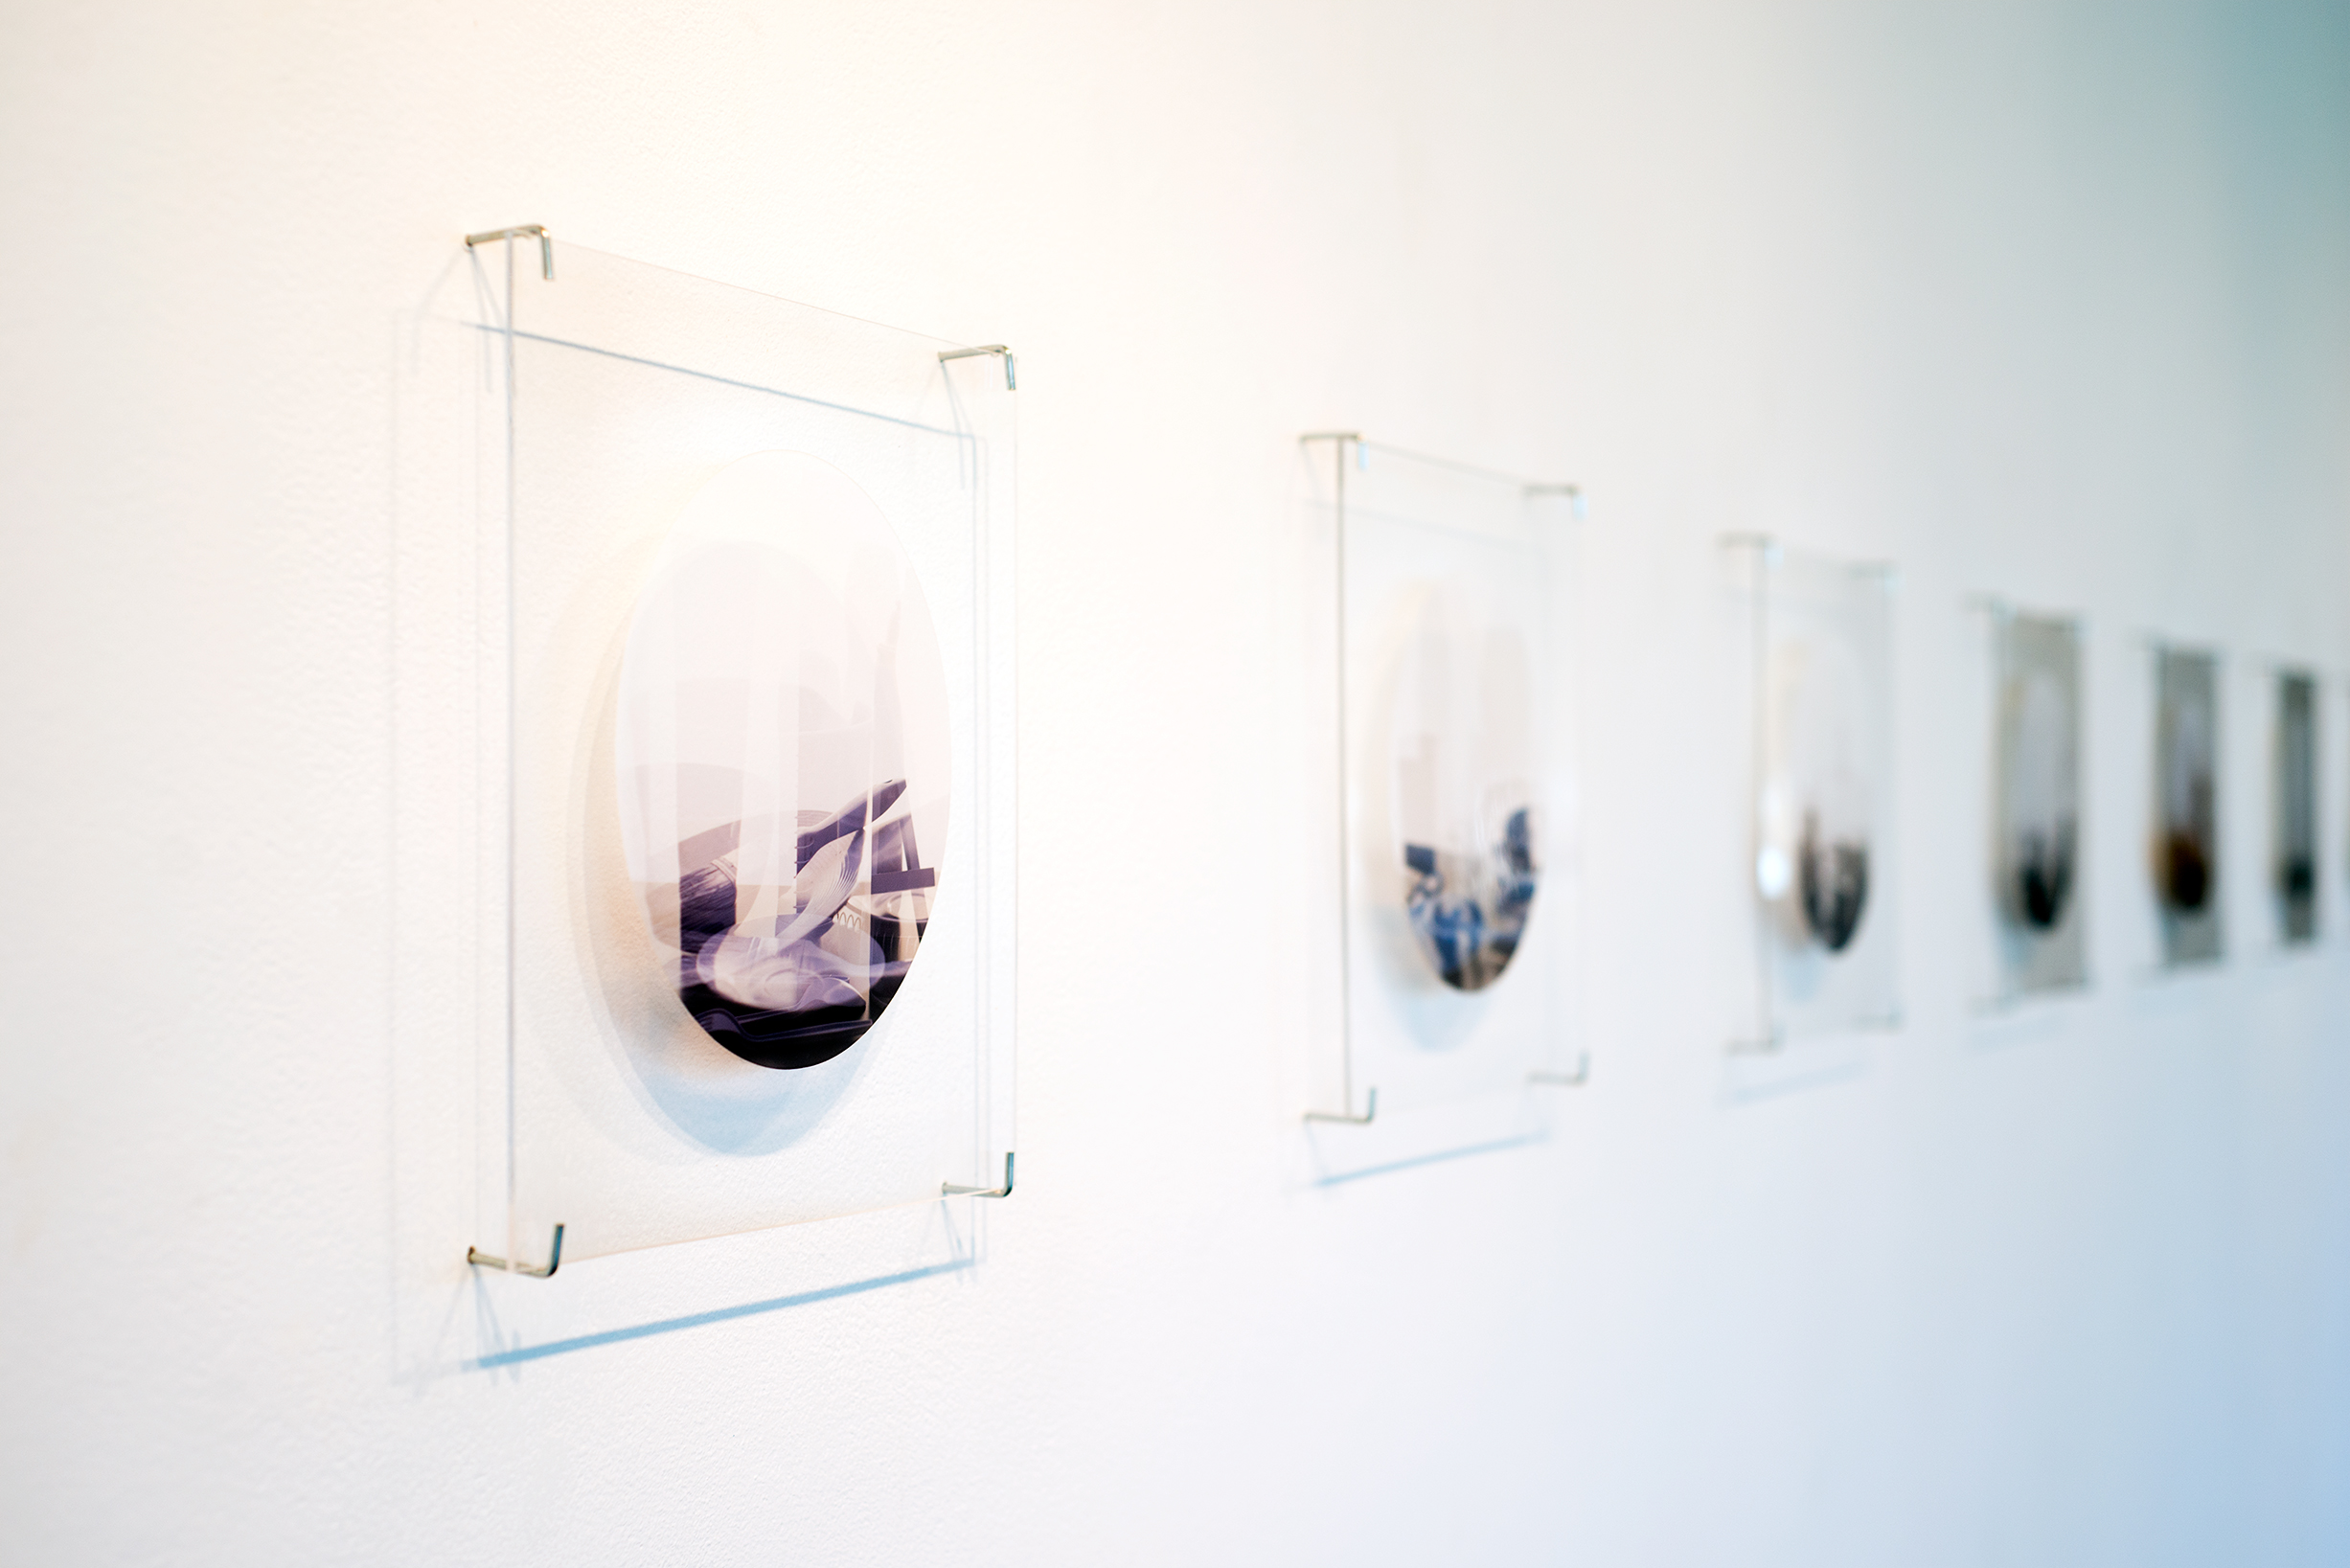 Installation view of the pieces.